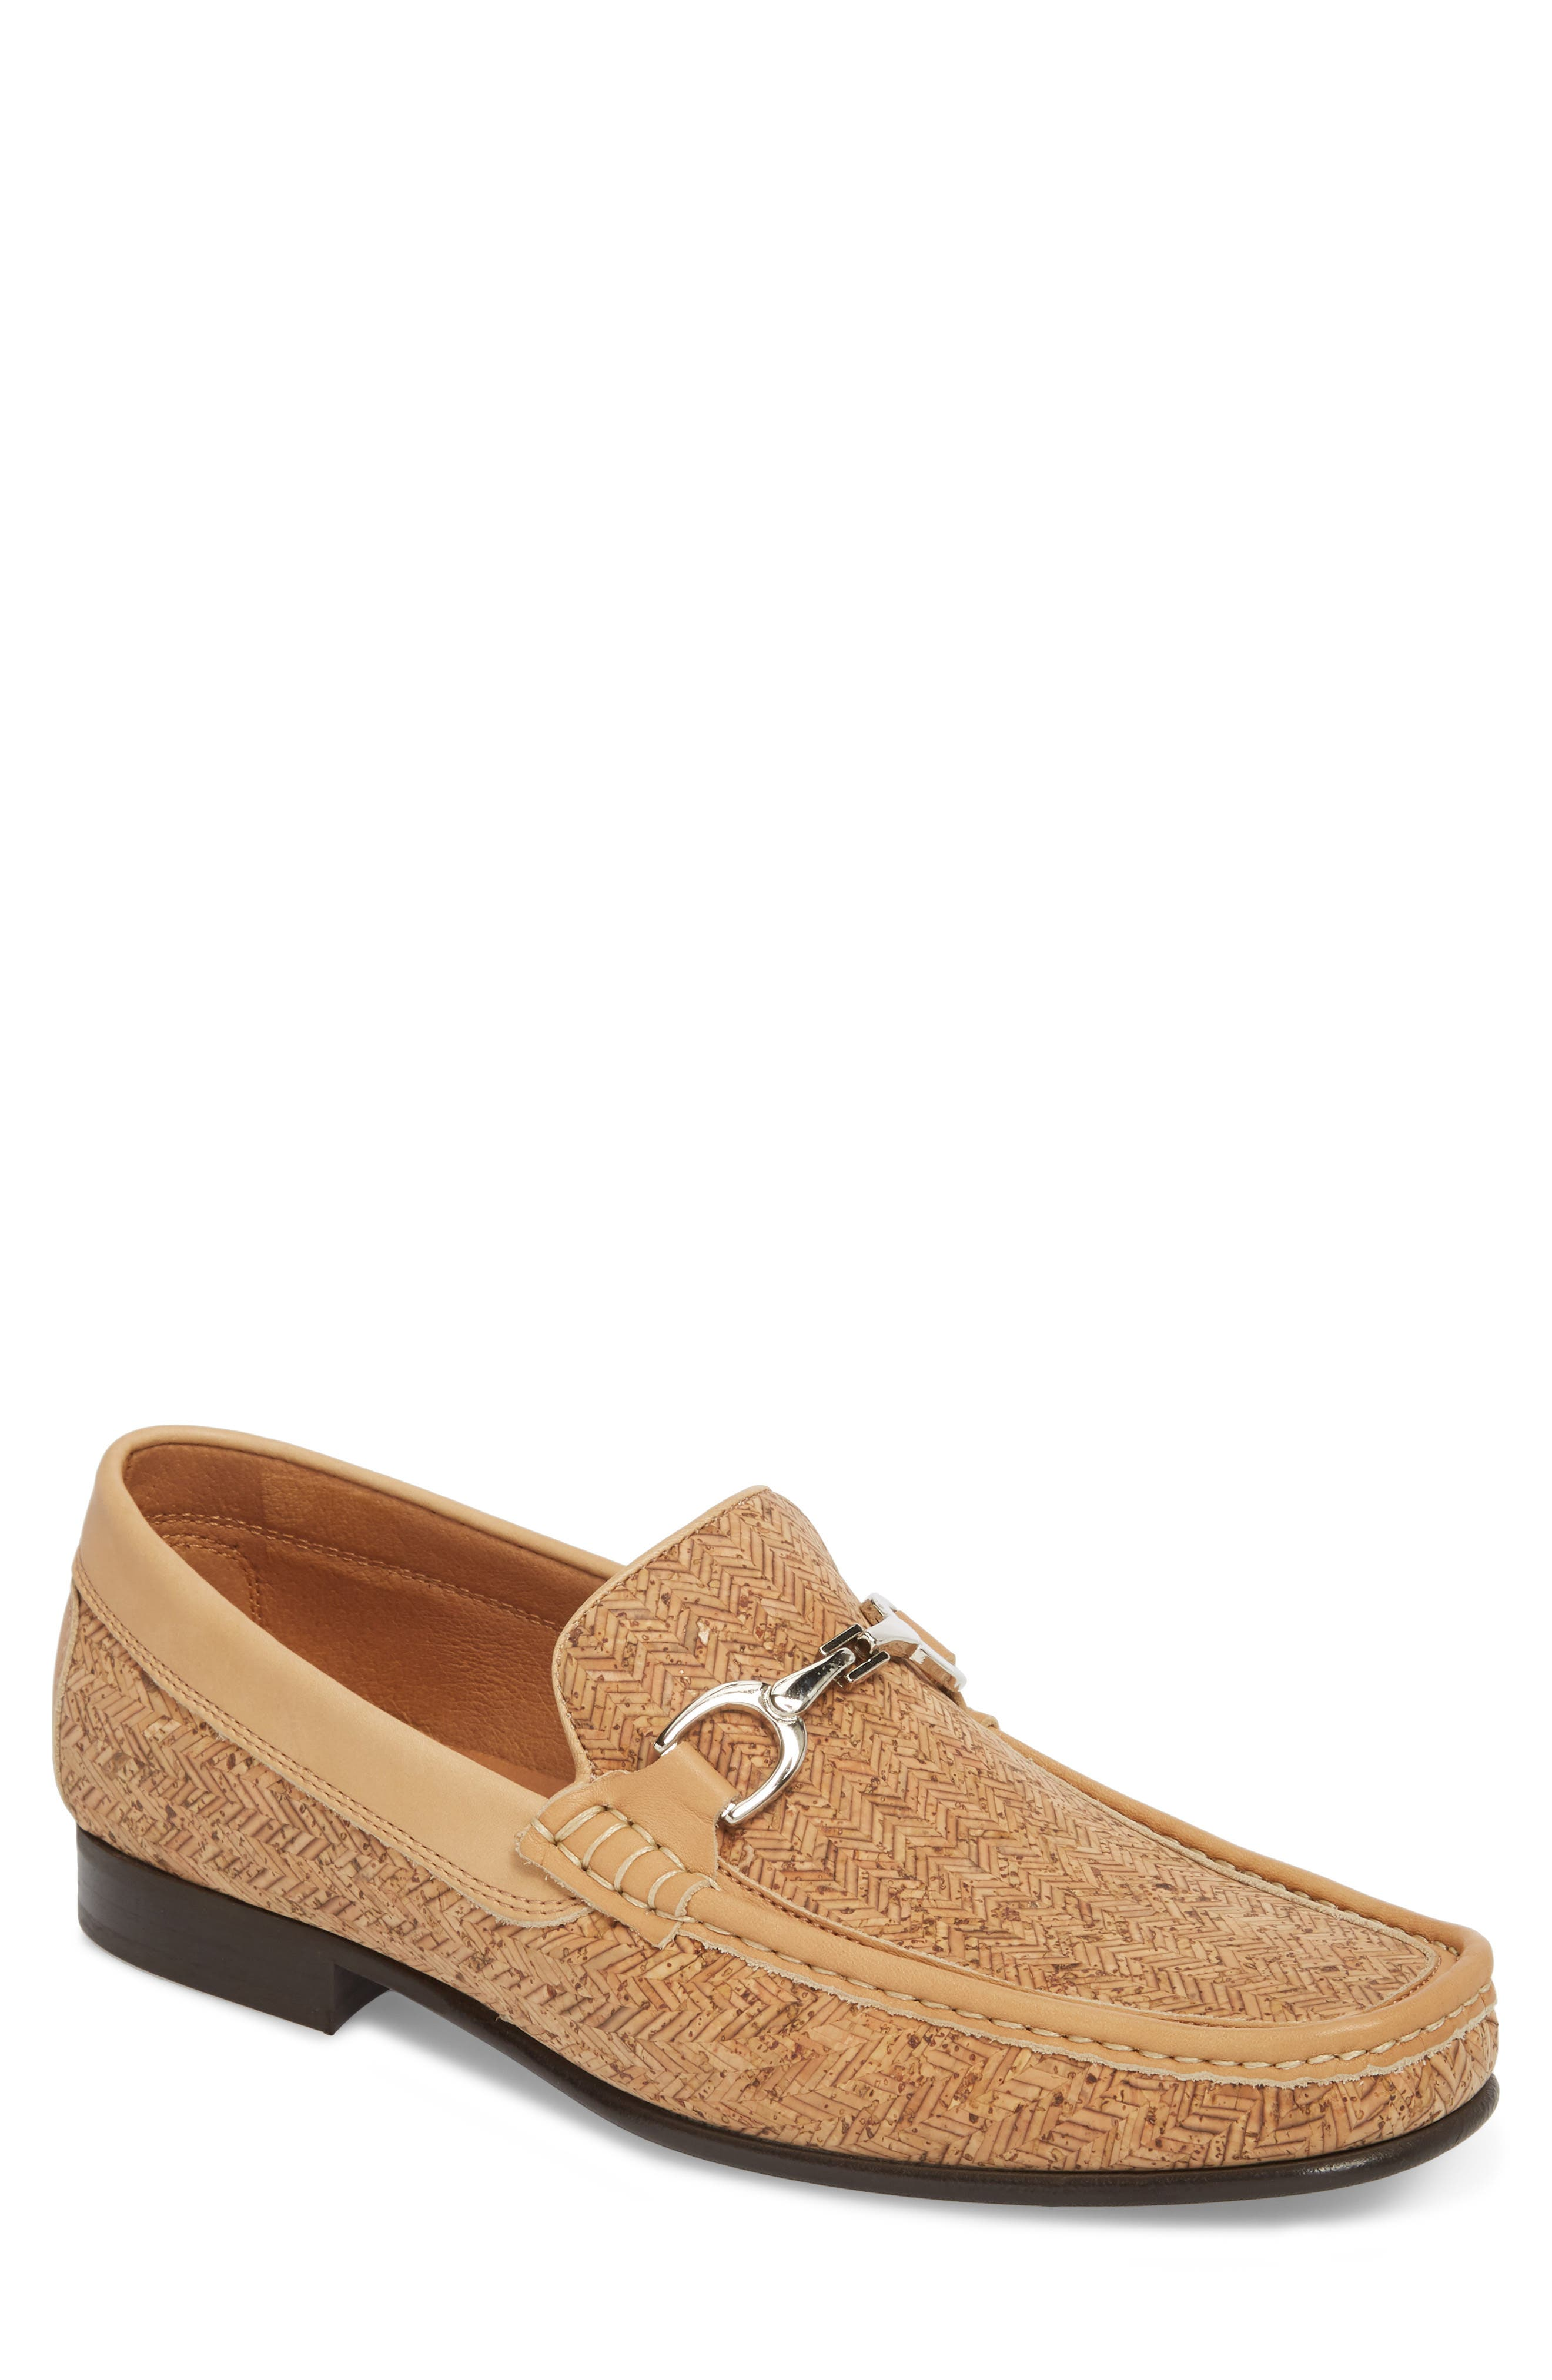 Darrin Loafer,                         Main,                         color, 250